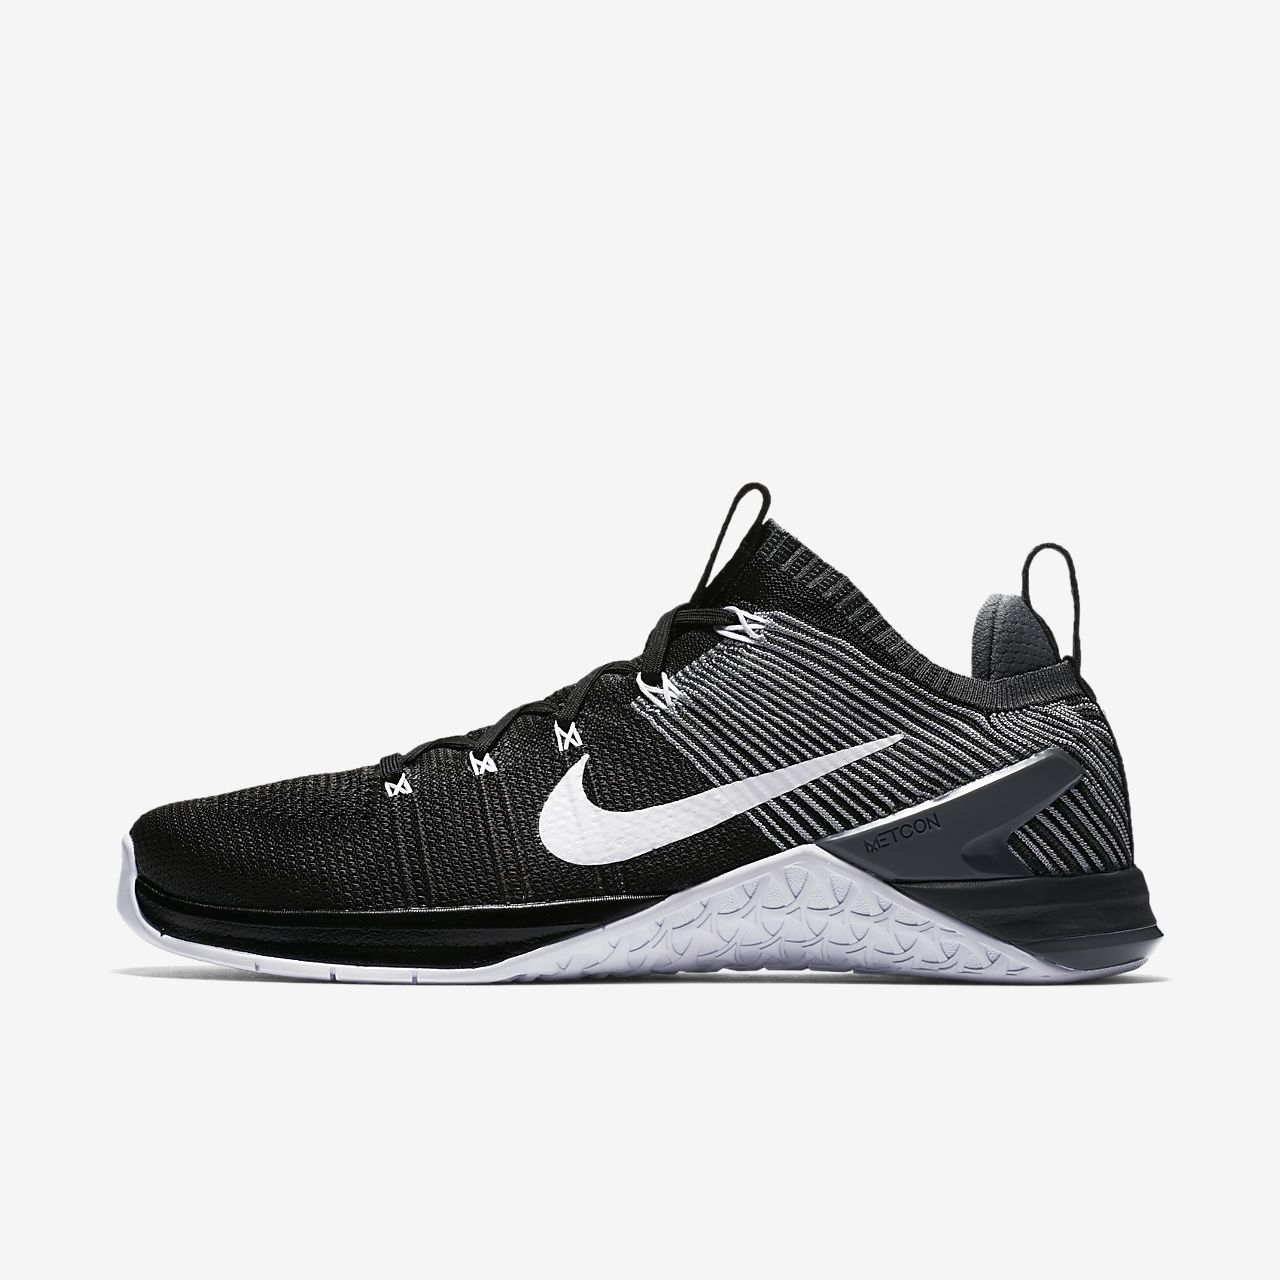 Metcon Dsx 2 Flyknit And Rubber Sneakers Nike 2018 Newest Sale Online 100% Guaranteed Sale Online Fast Delivery Cheap Price Sale Purchase B5NwYfY